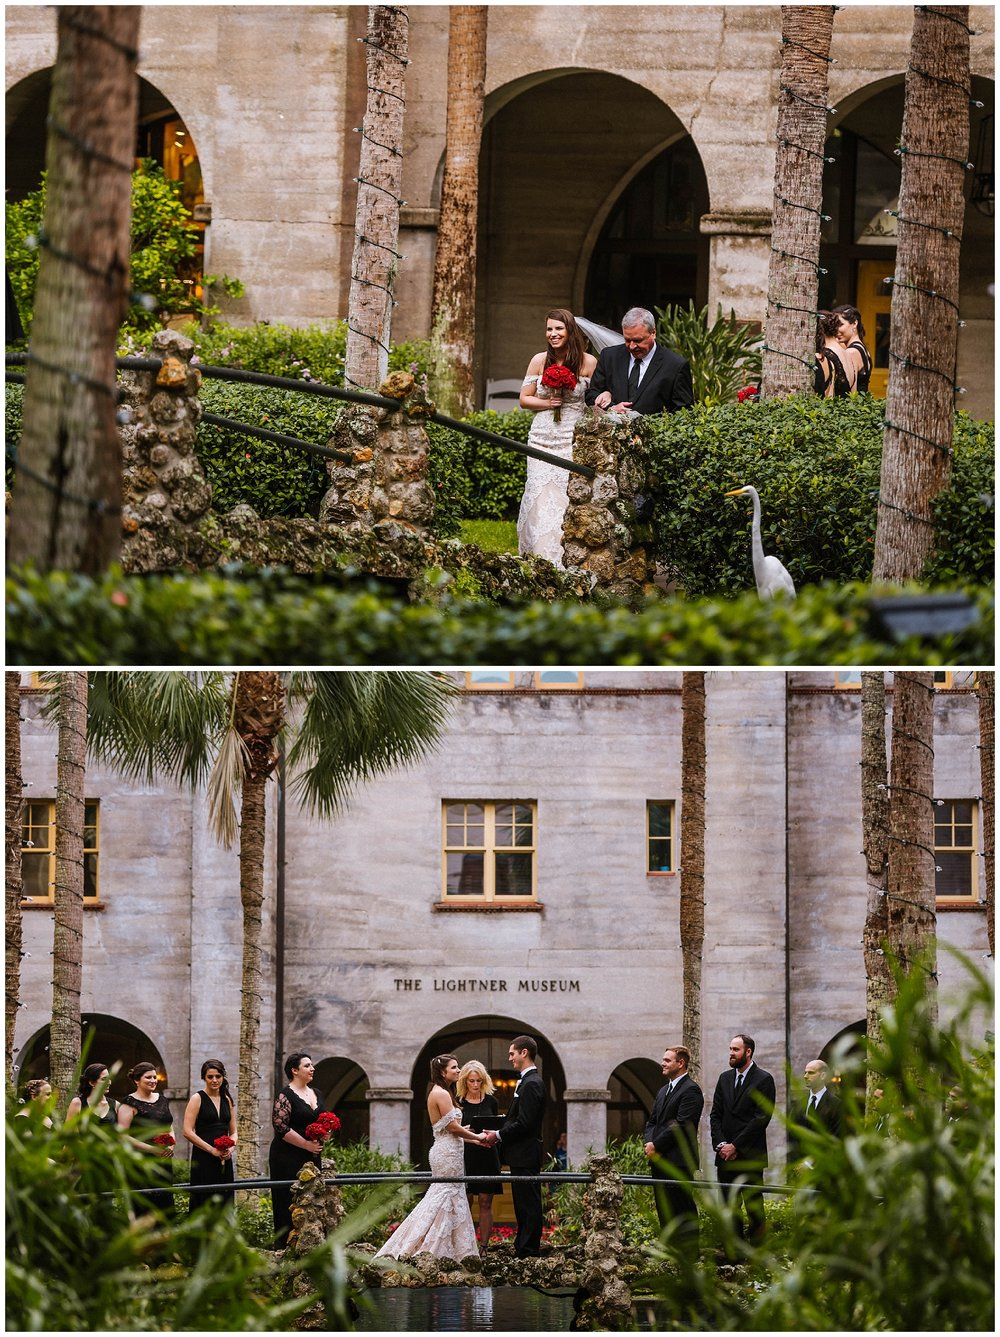 st-augustine-wedding-photographer-rainy-lightner-museum-flagler-casa-monica_0021.jpg